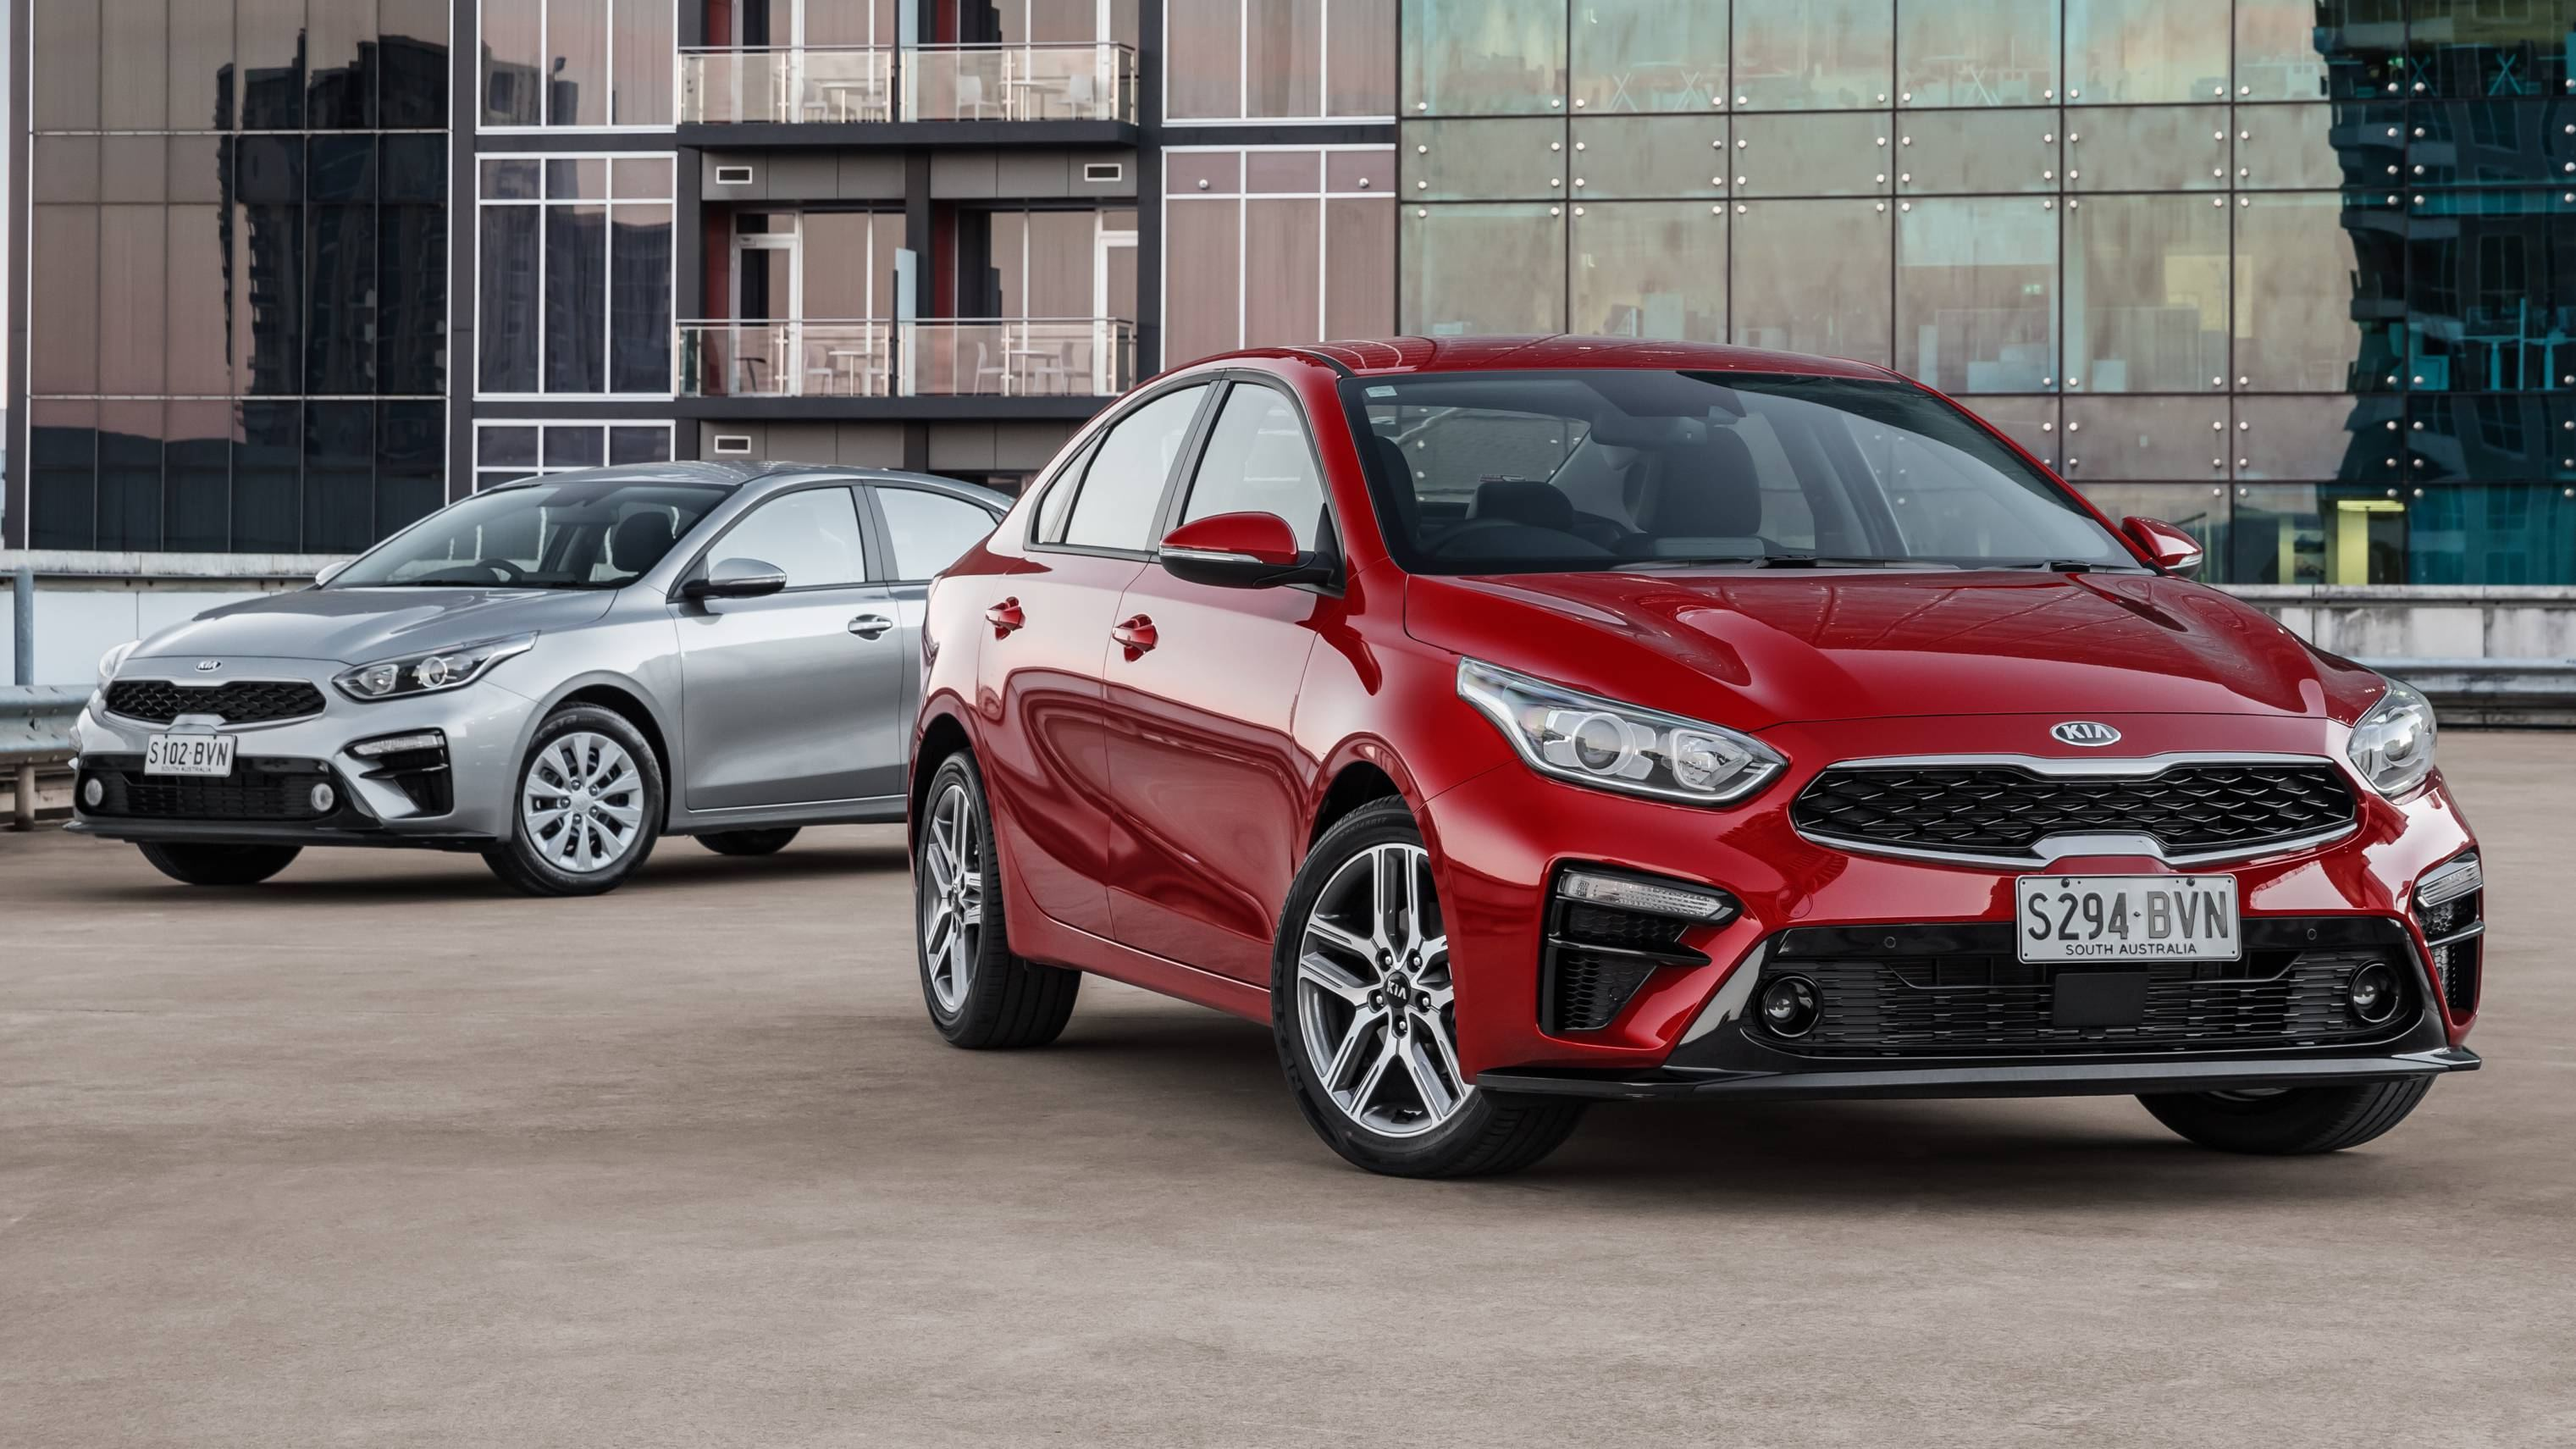 News Kia Au Launches Facelifted Cerato With Stinger Like